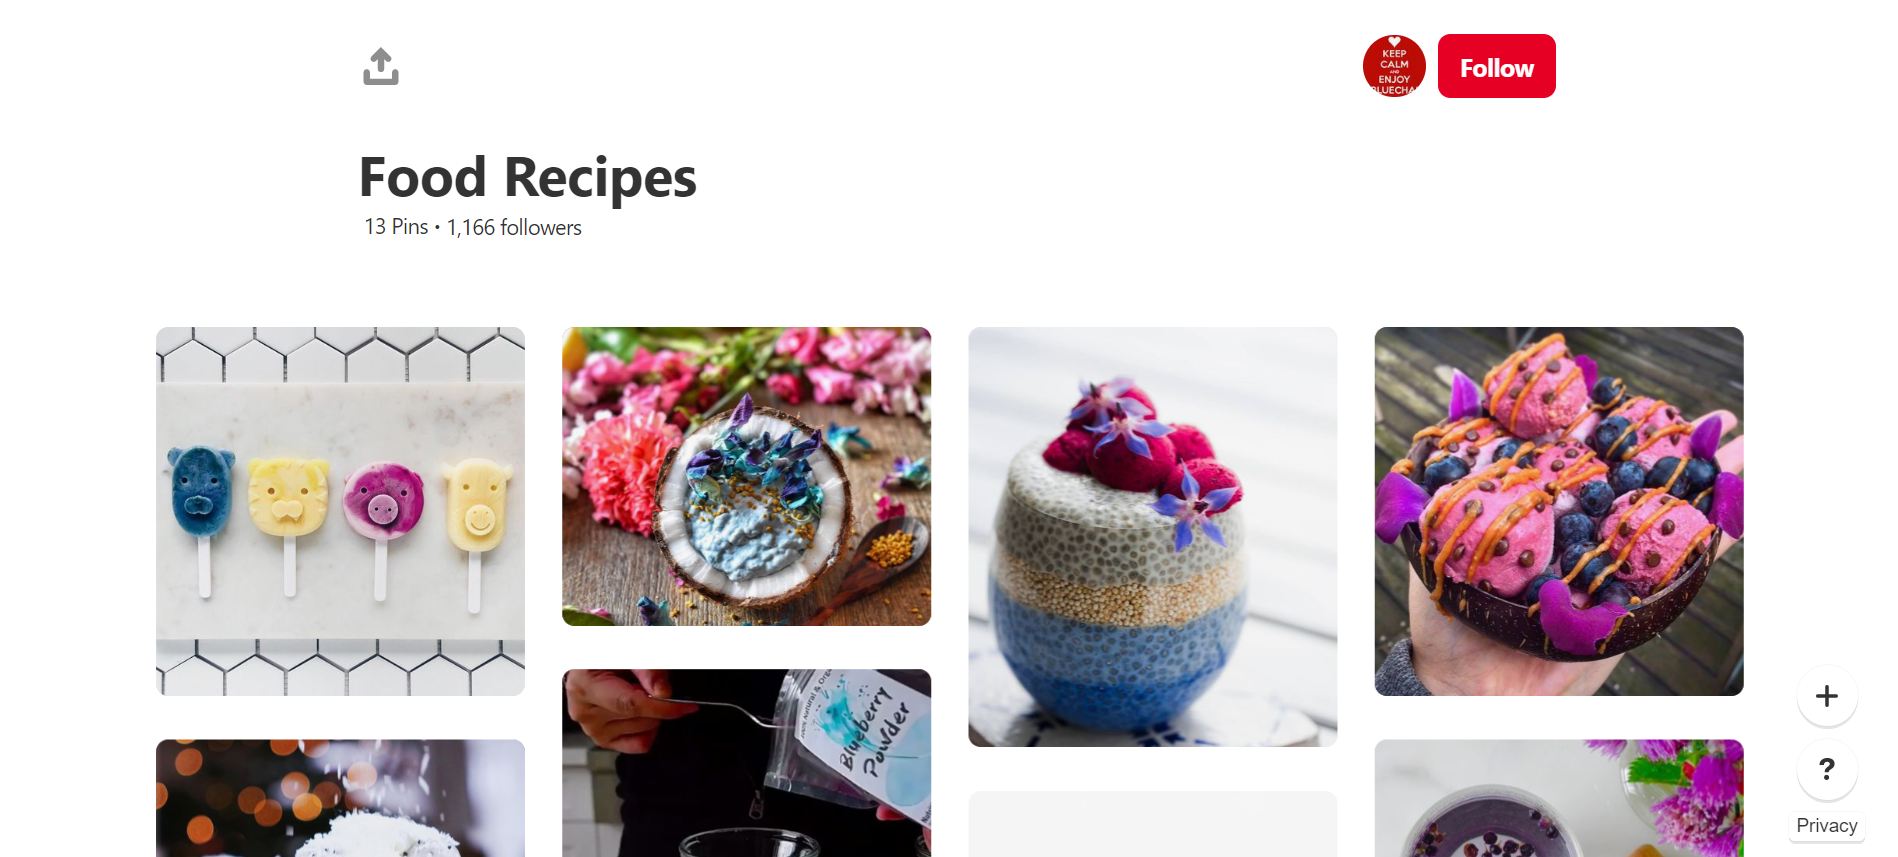 Bluechai Shop is one of the great online stores on Pinterest